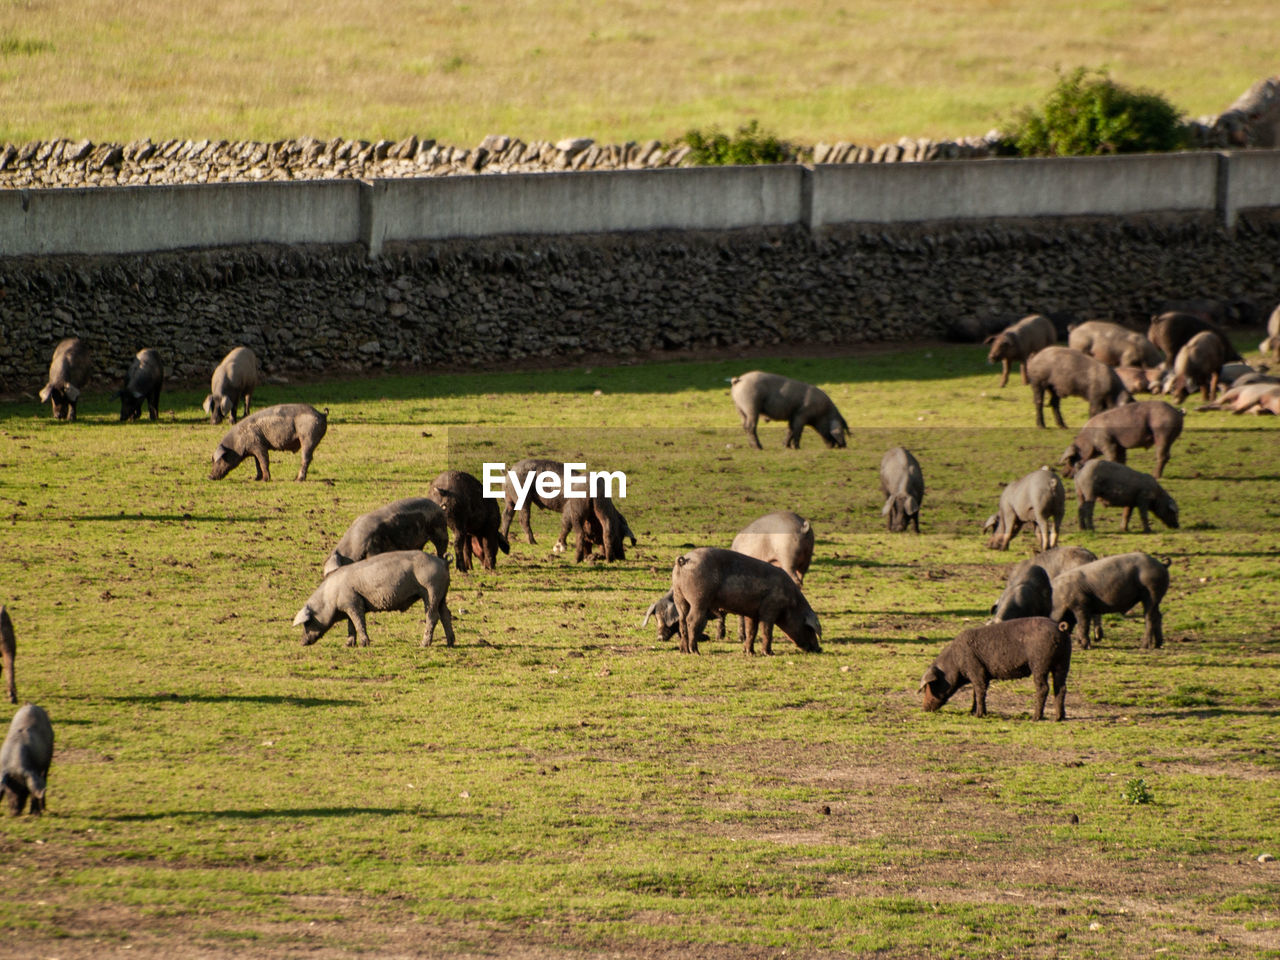 animal, animal themes, group of animals, mammal, large group of animals, grass, animals in the wild, animal wildlife, field, day, livestock, domestic animals, plant, land, nature, no people, agriculture, vertebrate, grazing, herd, outdoors, herbivorous